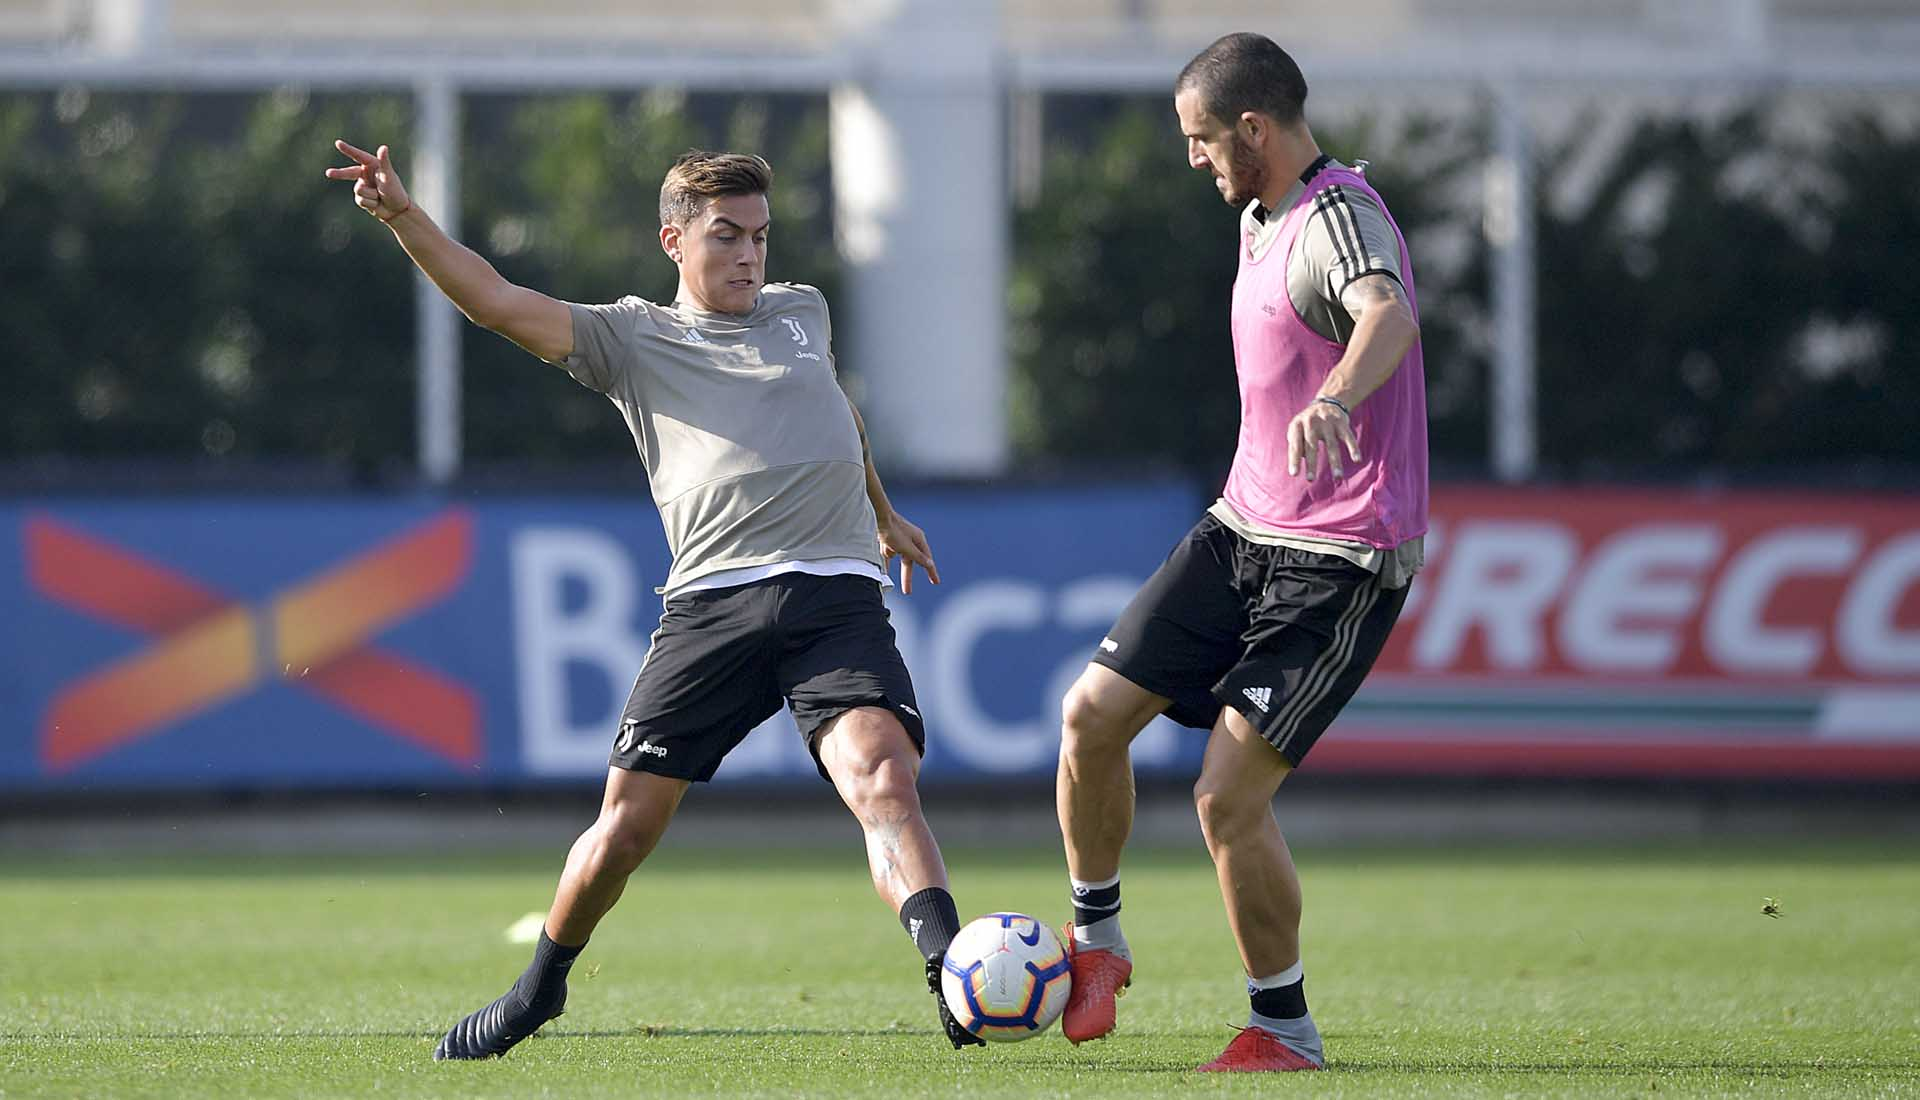 69a8a997d31 Paulo Dybala Trains in Blackout adidas Prototype Boots - SoccerBible.